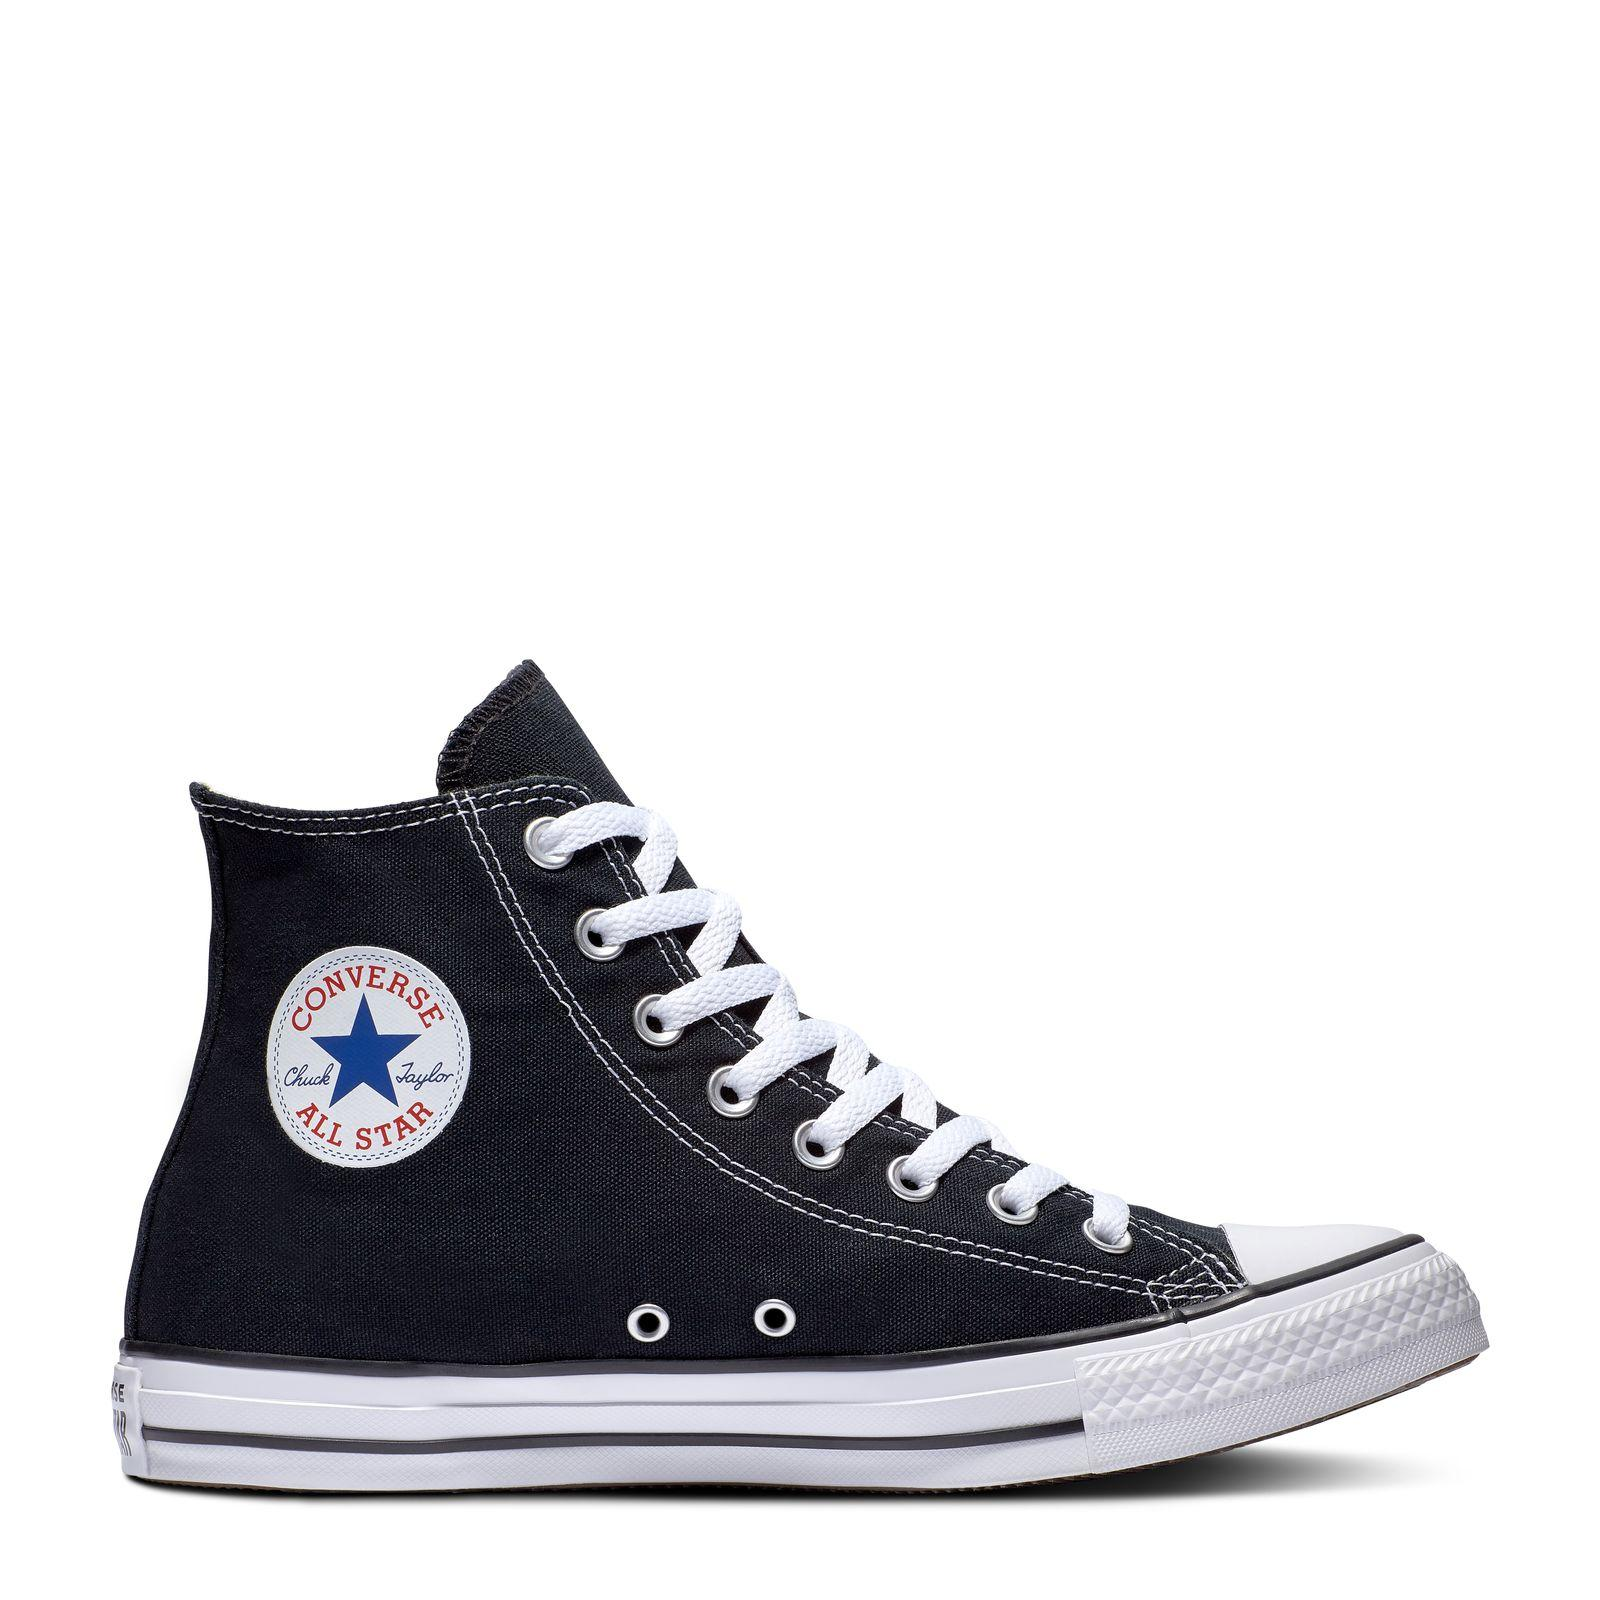 0bf6a229e2c Converse Philippines: Converse price list - Shoes for Men & Women ...